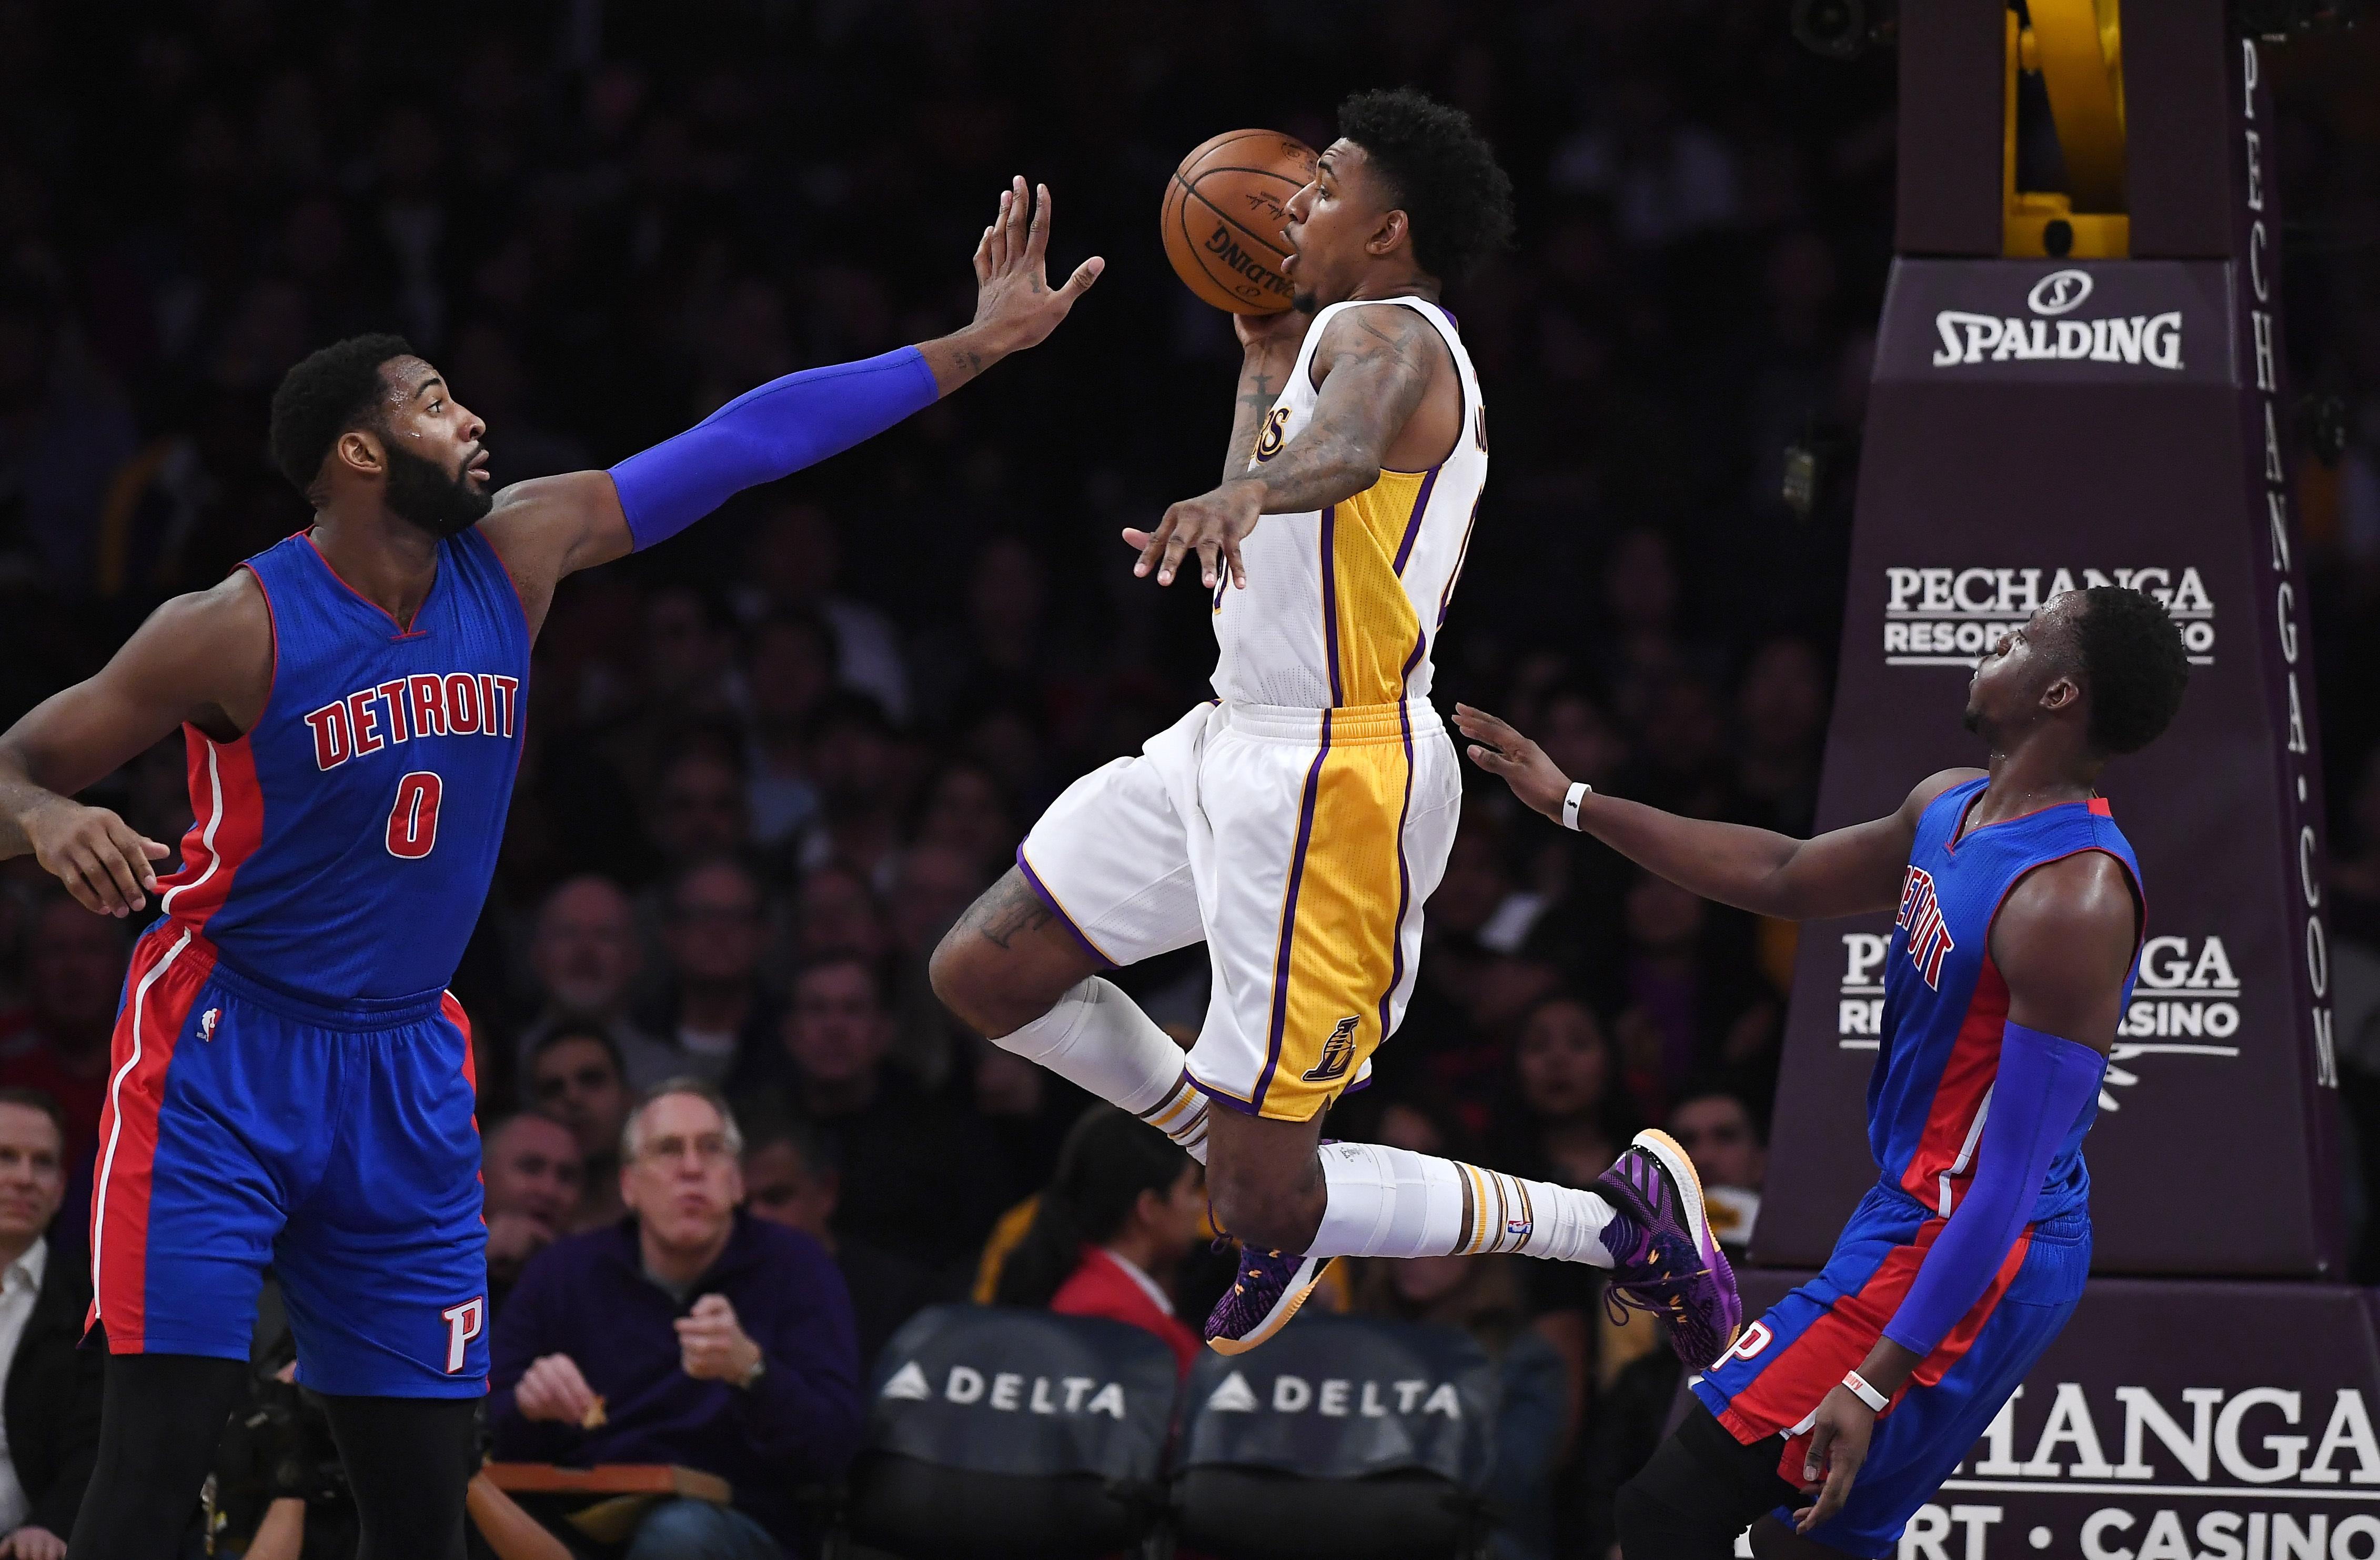 Pistons_lakers_basketball_05890